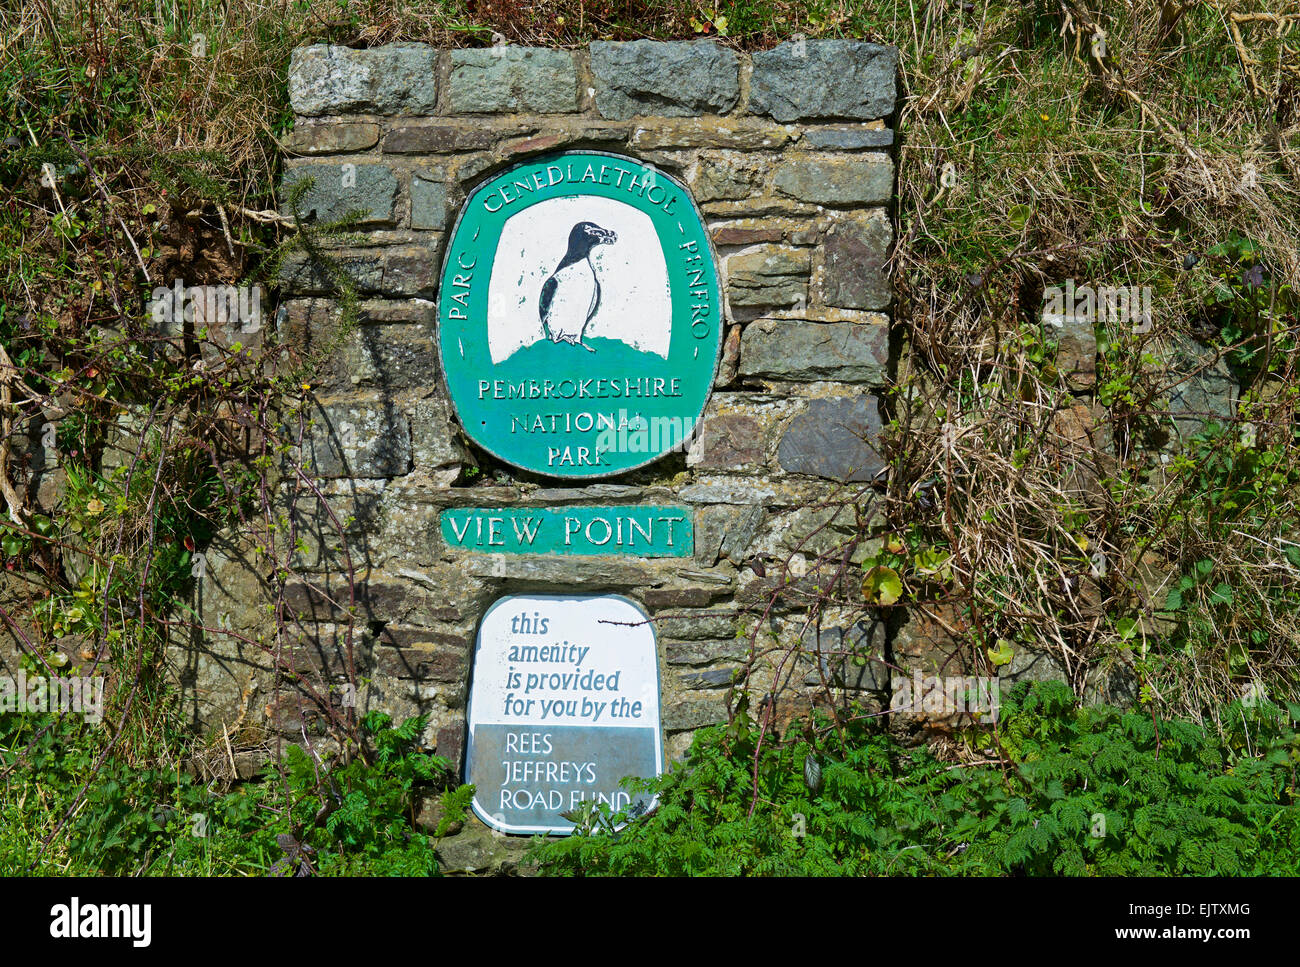 Sign at view point for Pembrokesire Coast National Park, Wales UK - Stock Image